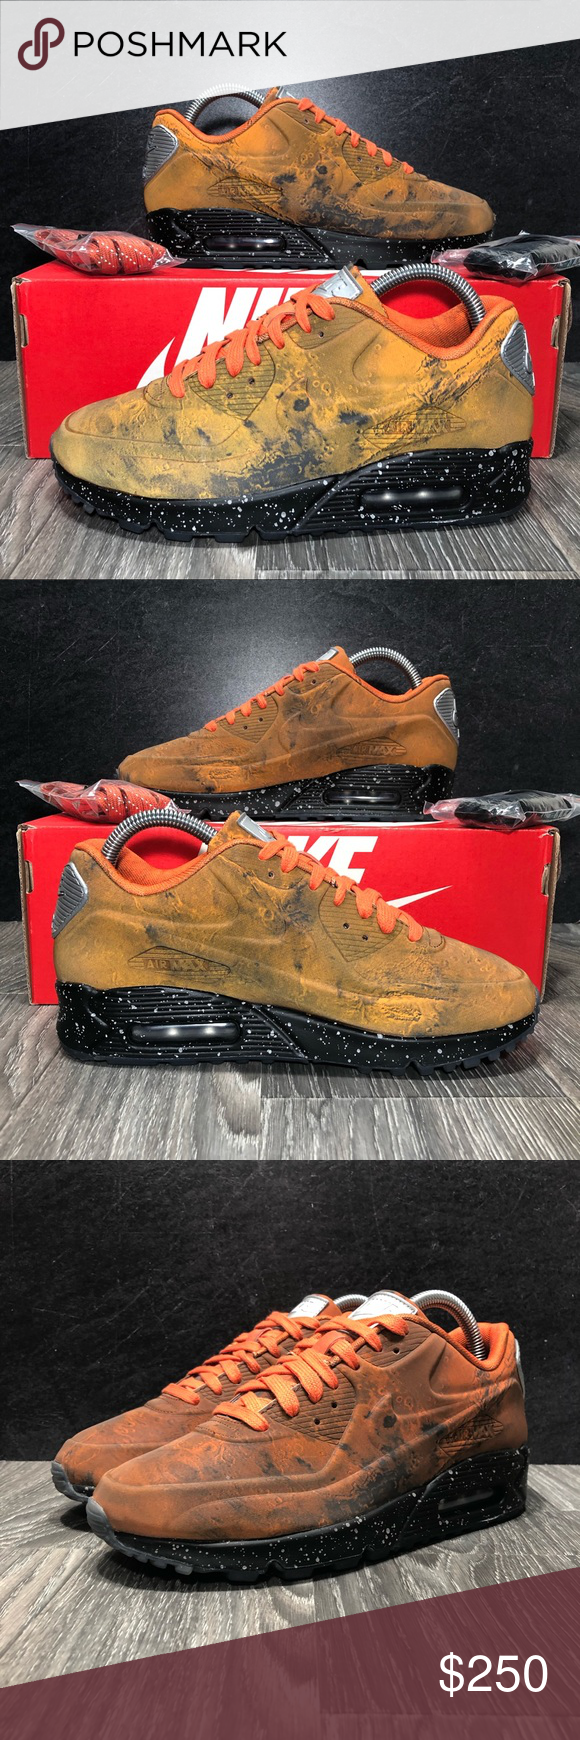 Nike Air Max 90 Mars Landing Qs Womens Size 7 5 Nwt With Images Nike Air Max 90 Air Max 90 Nike Air Max